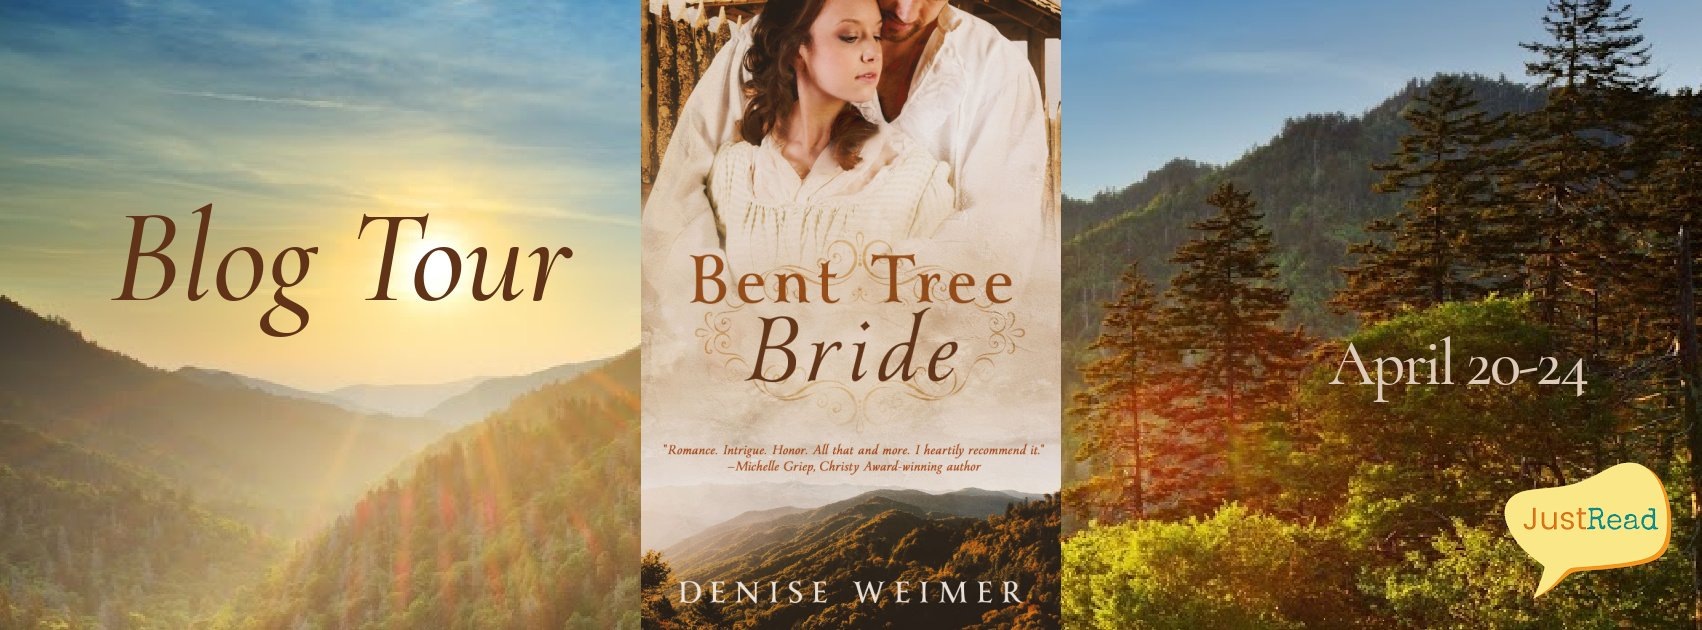 Welcome to the Bent Tree Bride Blog Tour & Giveaway!